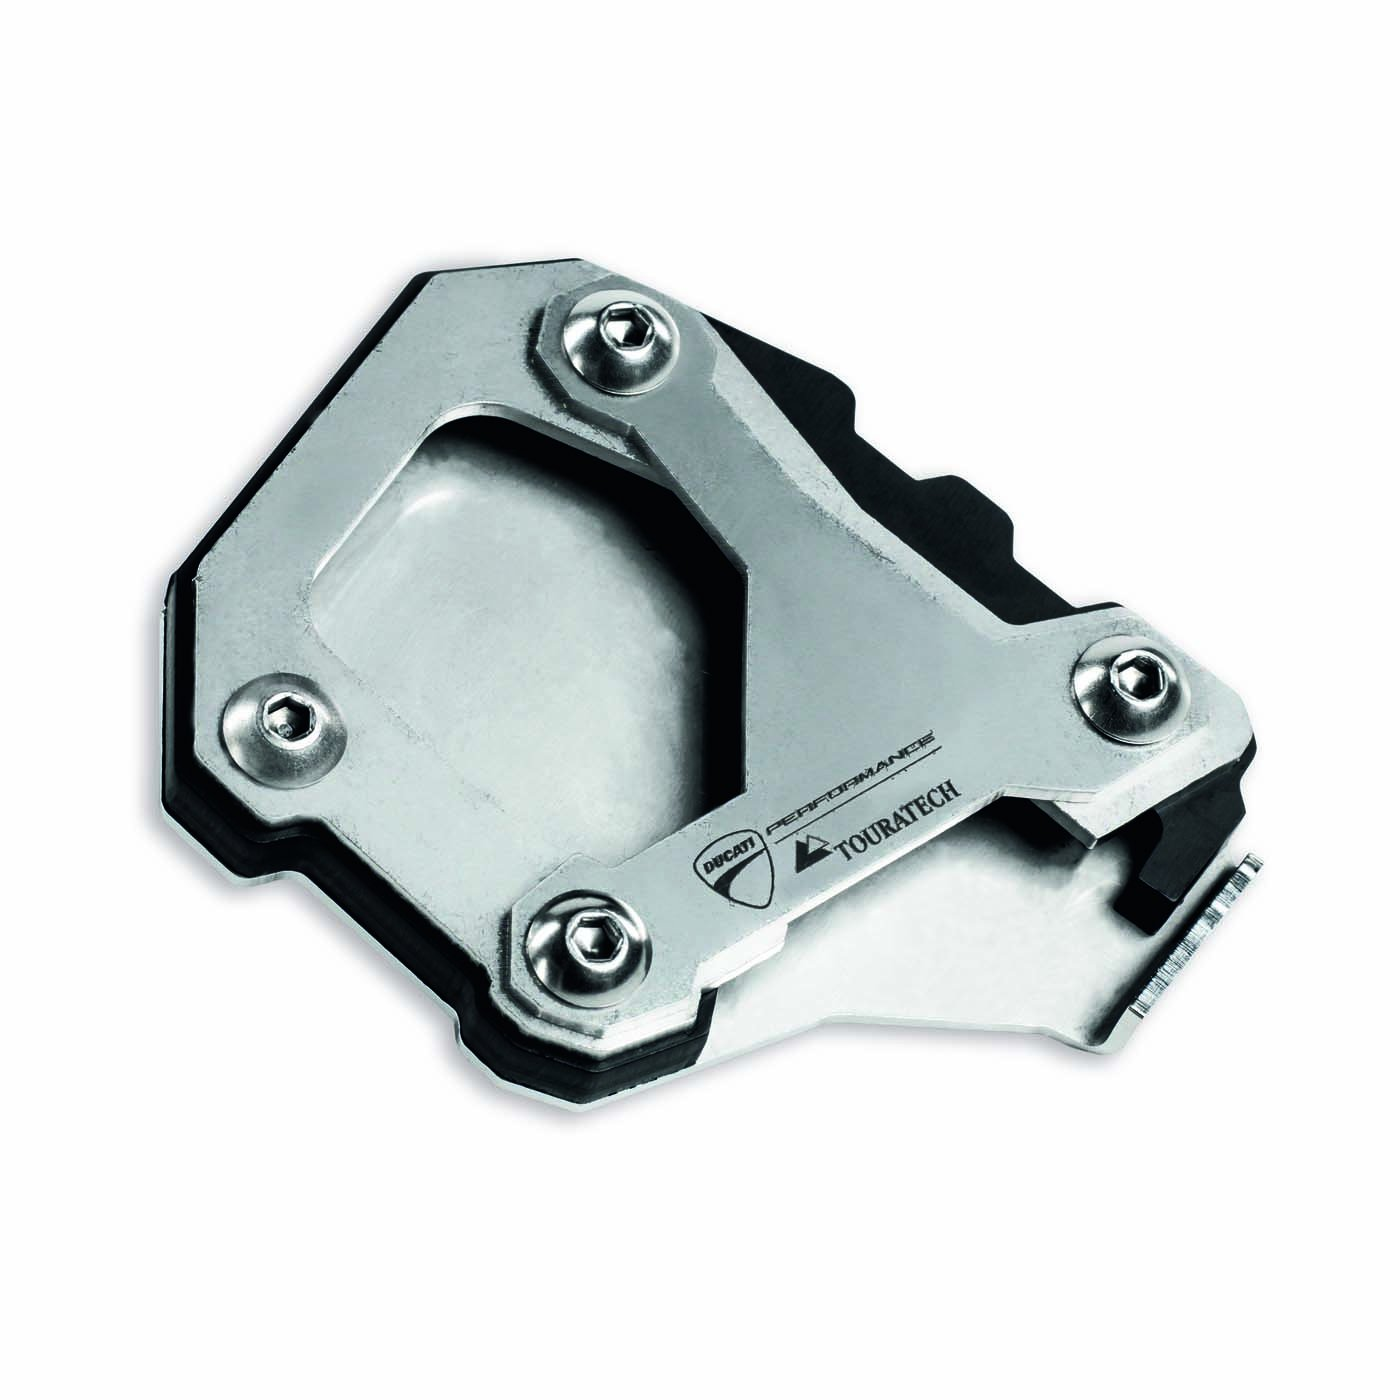 Multistrada 1200 Enduro Side Stand Support Plate by Touratech